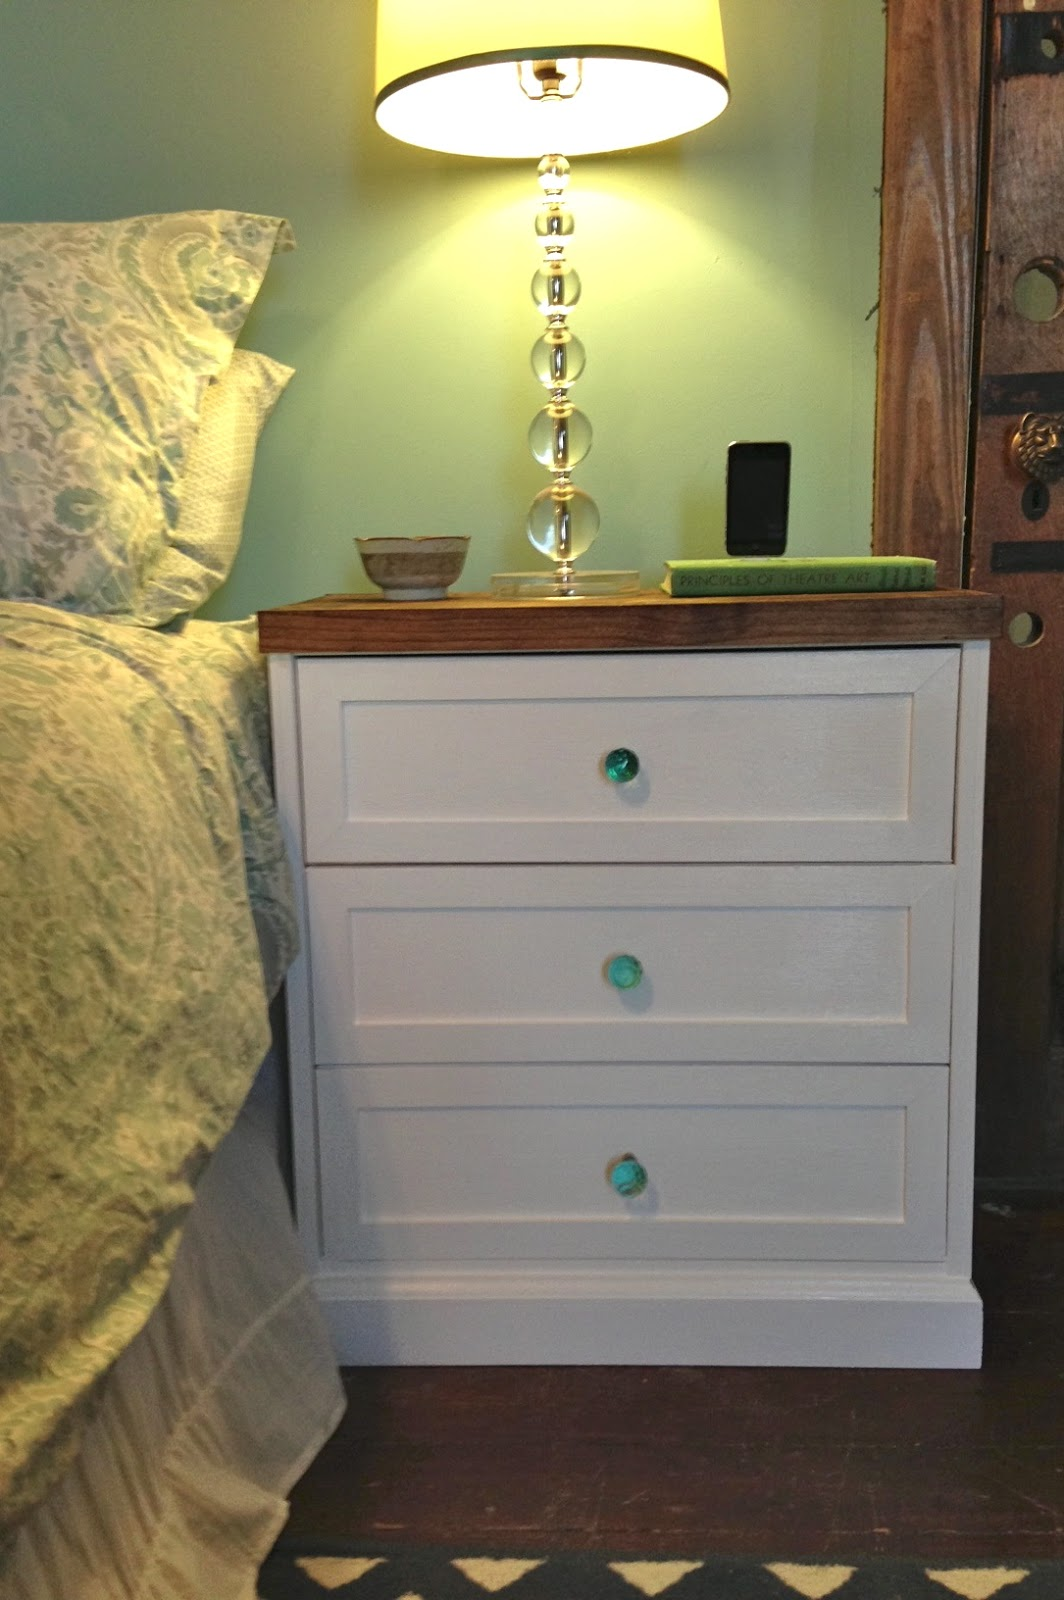 Ikea Rast Bedside Table Hack